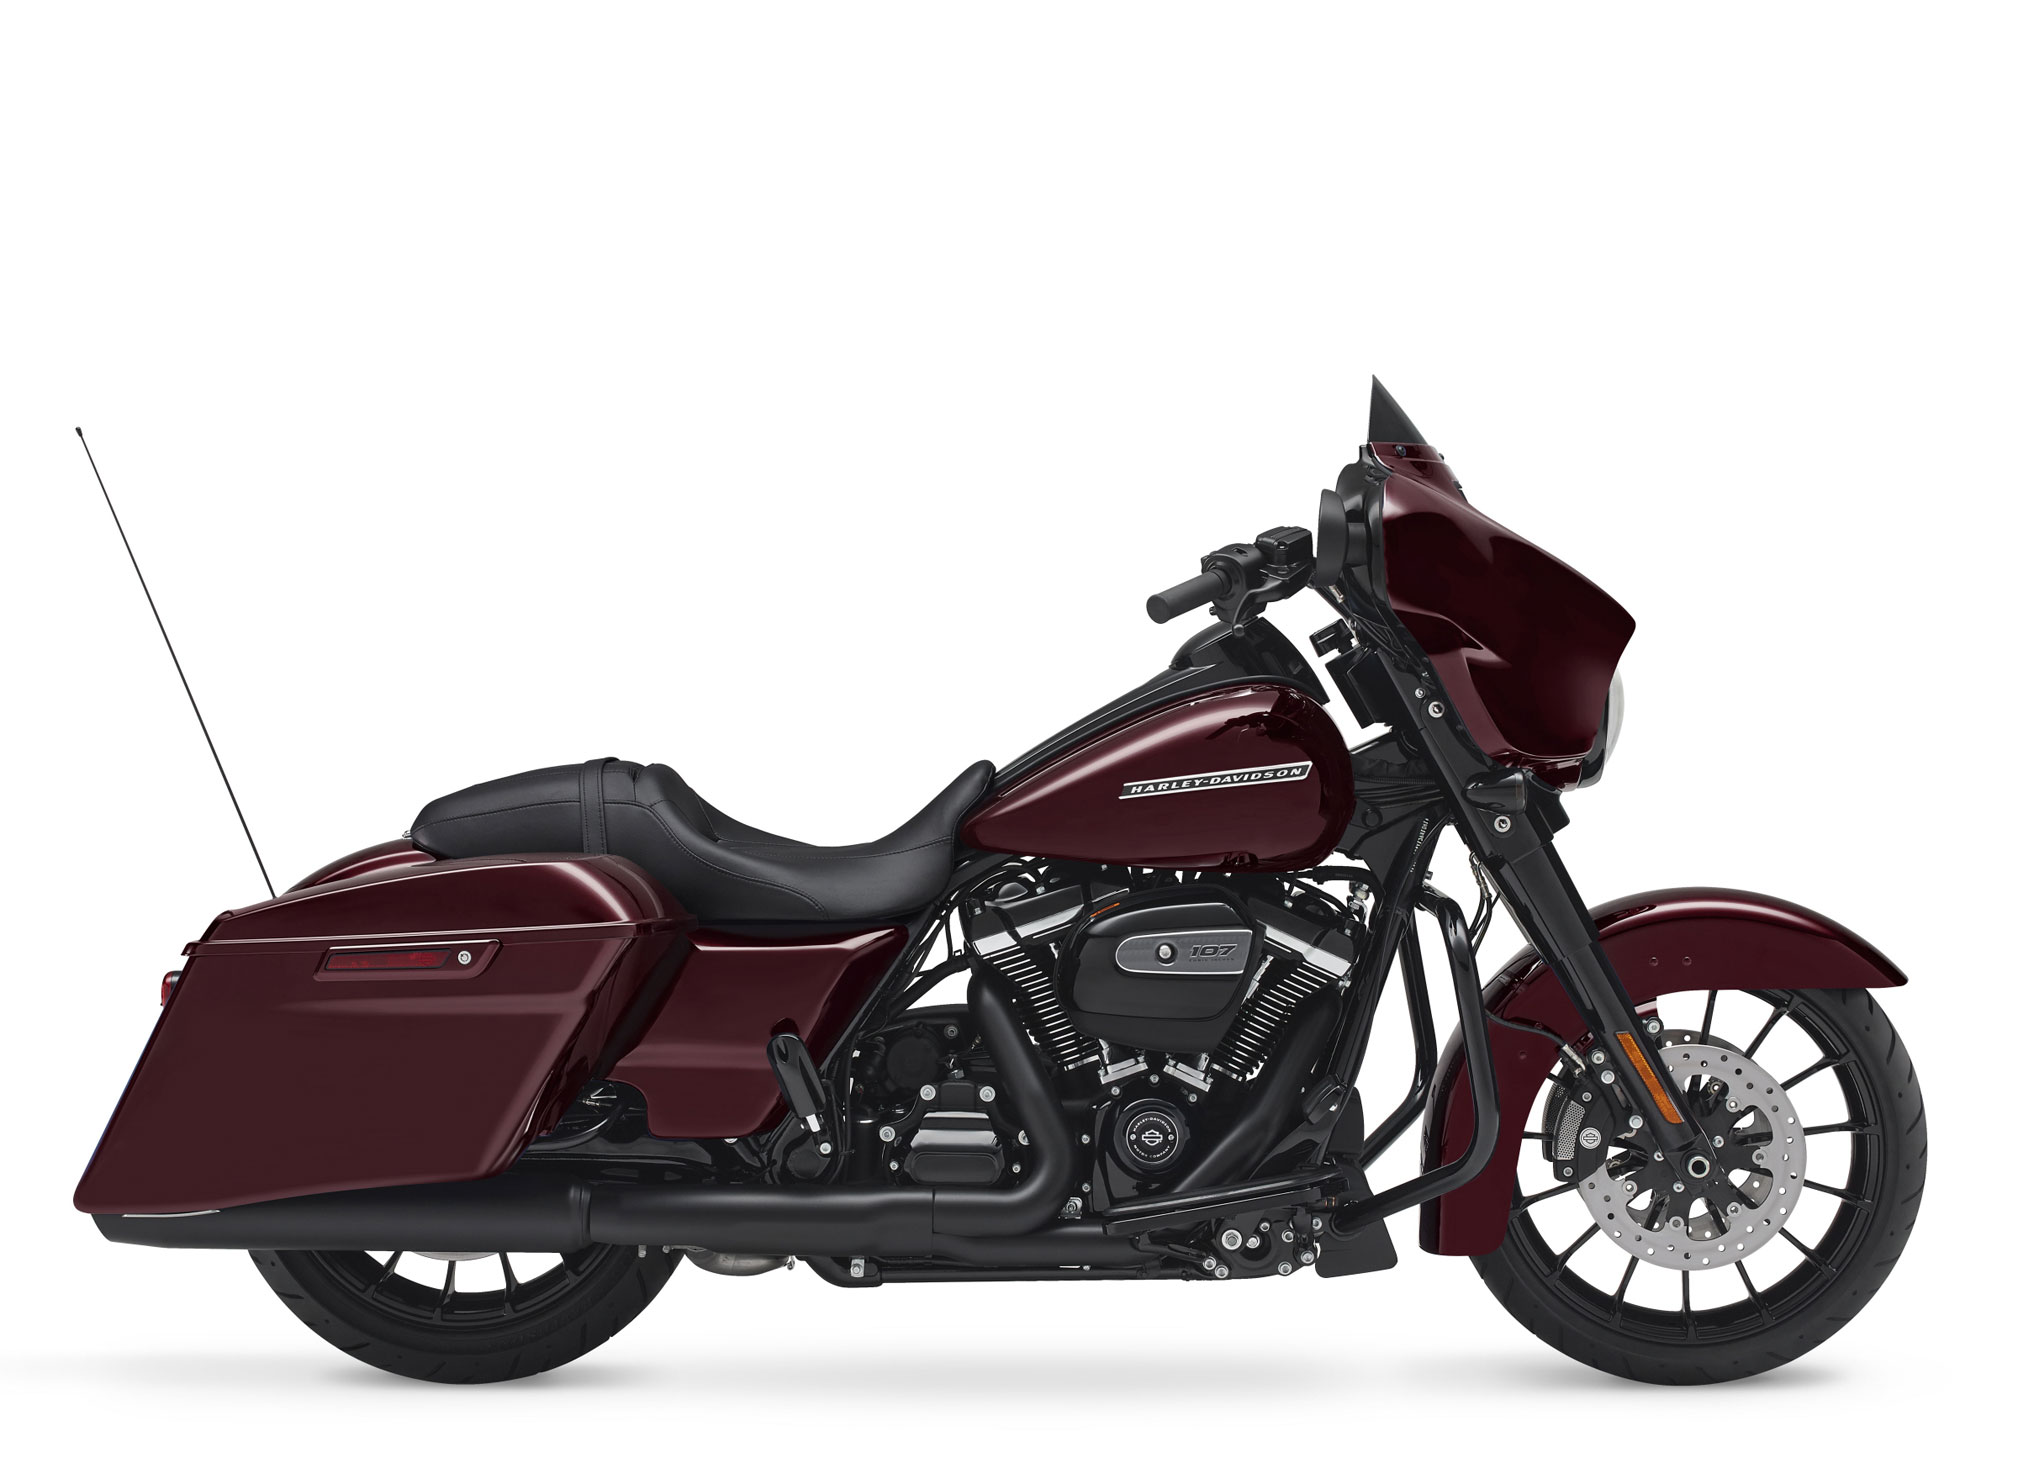 2018 Harley-Davidson Street Glide Special Review ...